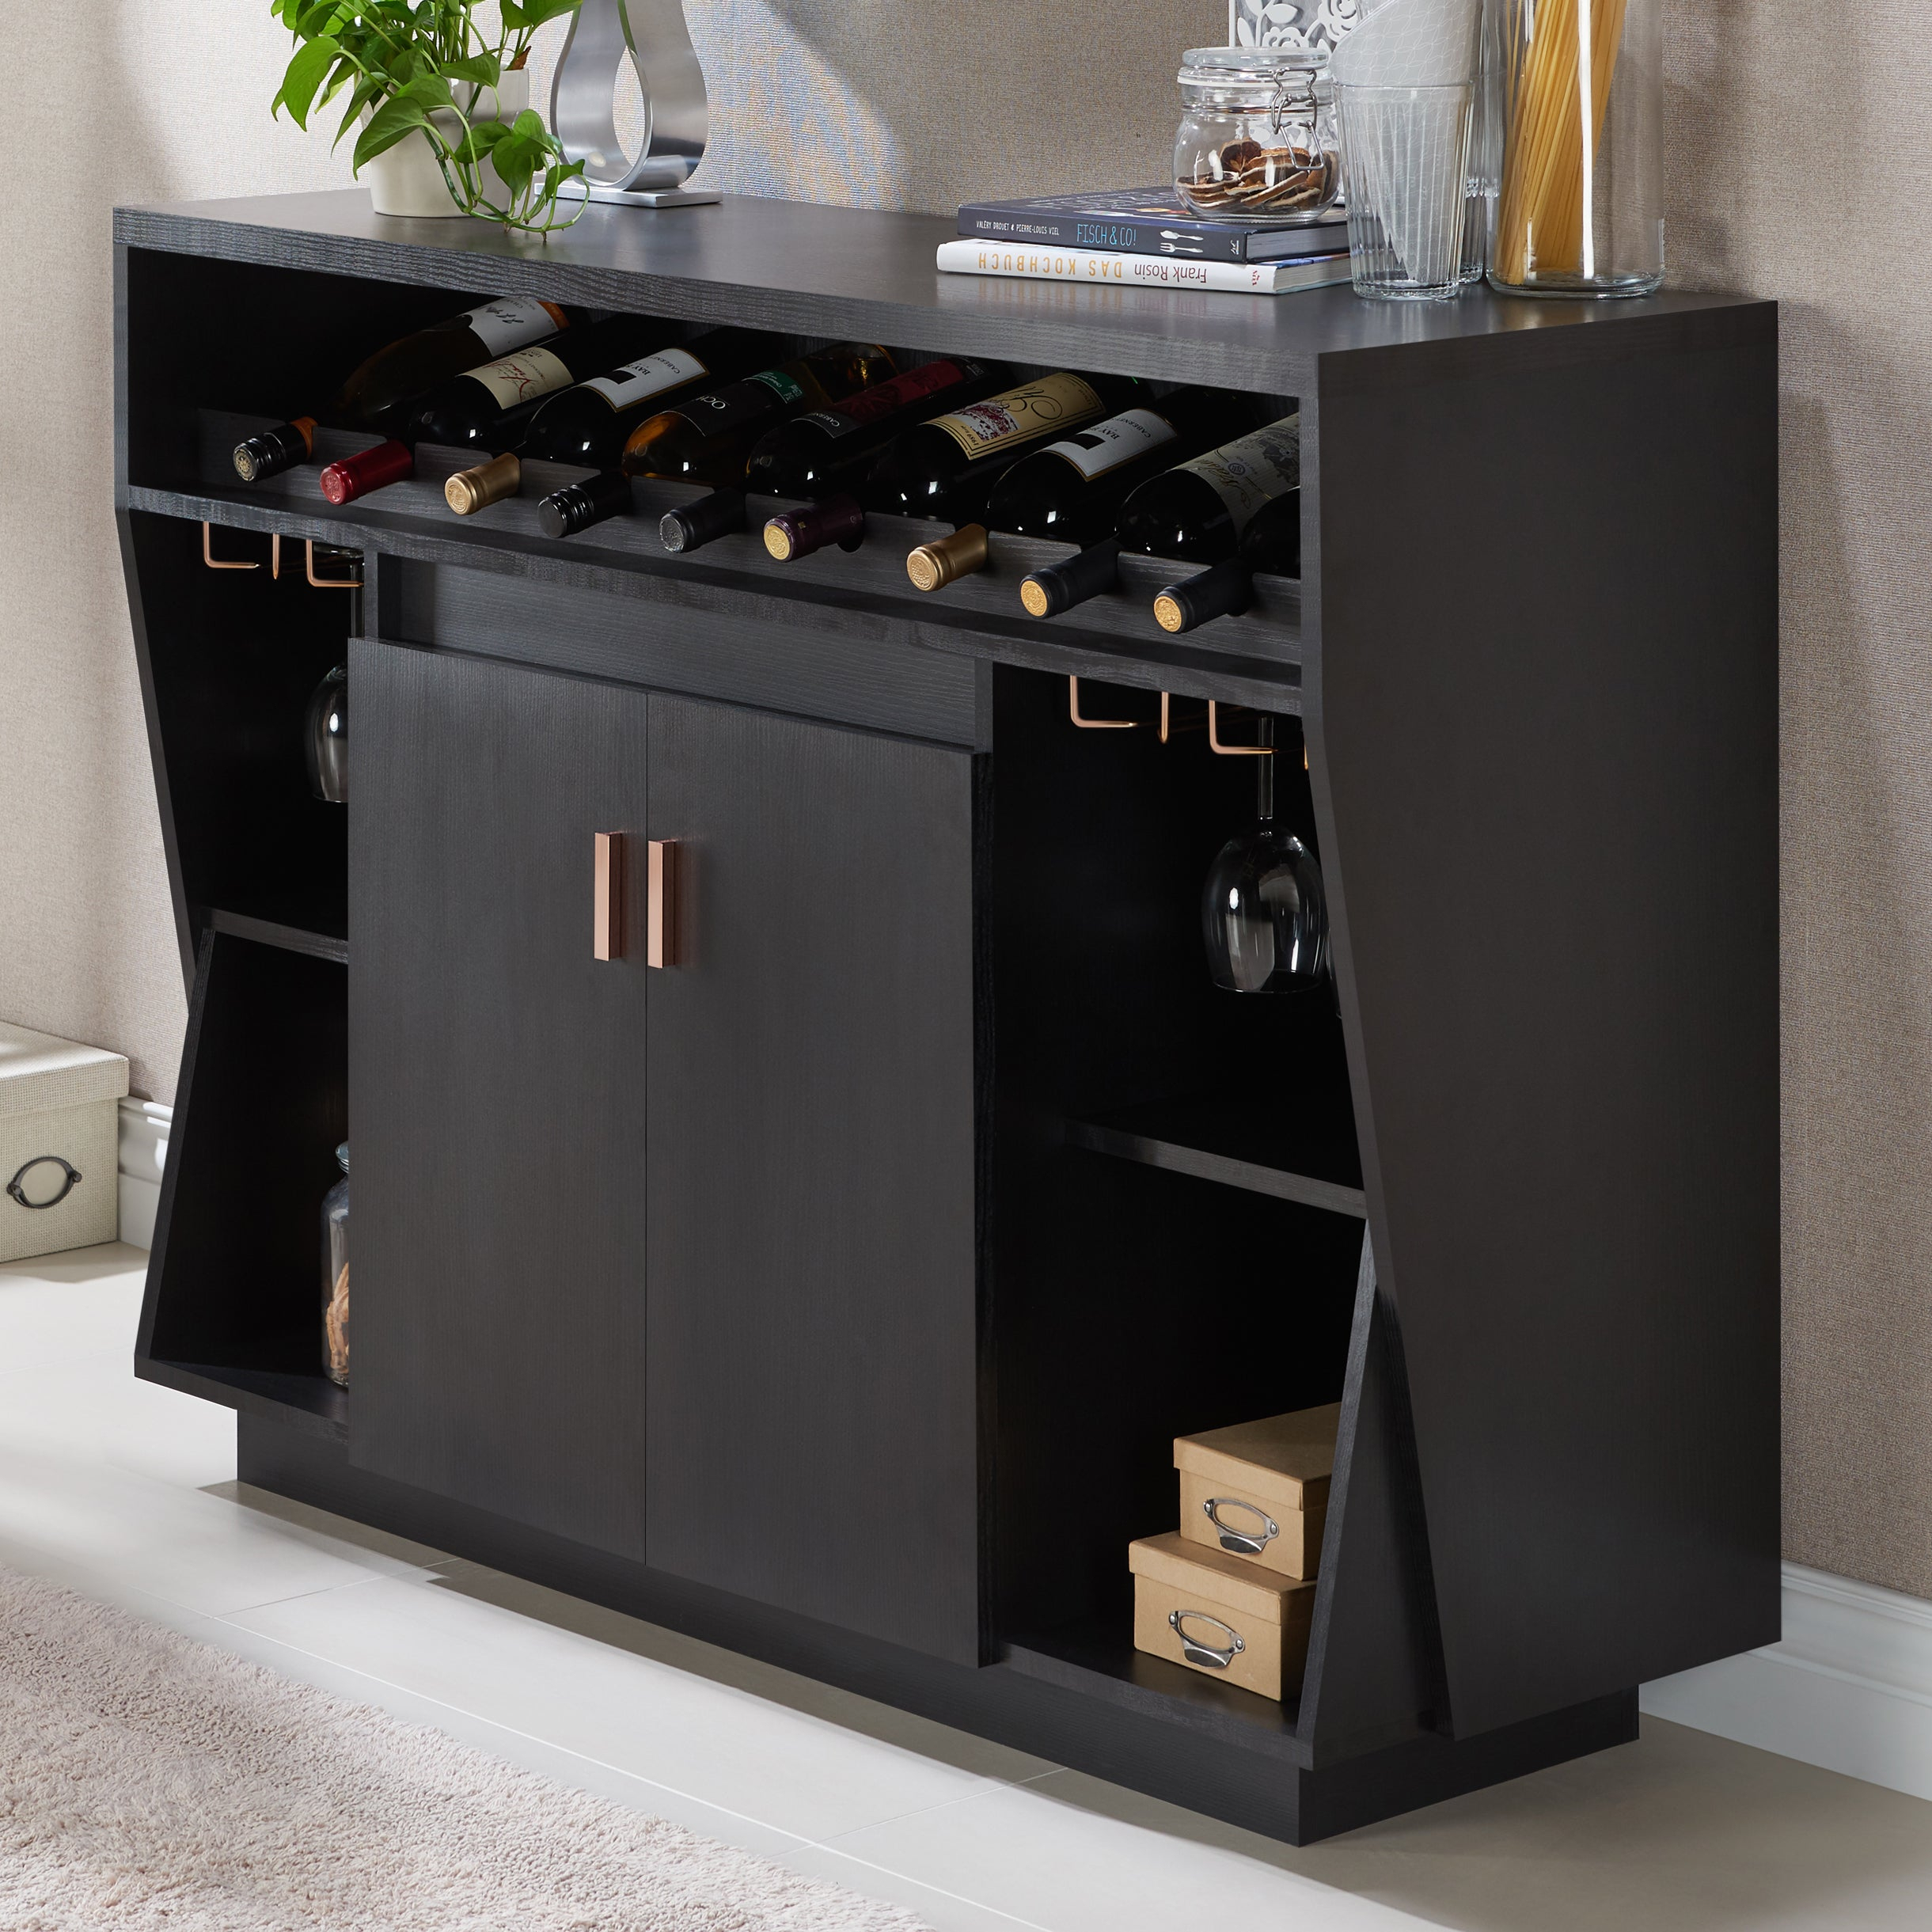 Gergich Contemporary 47 Inch Black Dining Buffetfoa Inside Contemporary Black Dining Buffets (View 5 of 30)